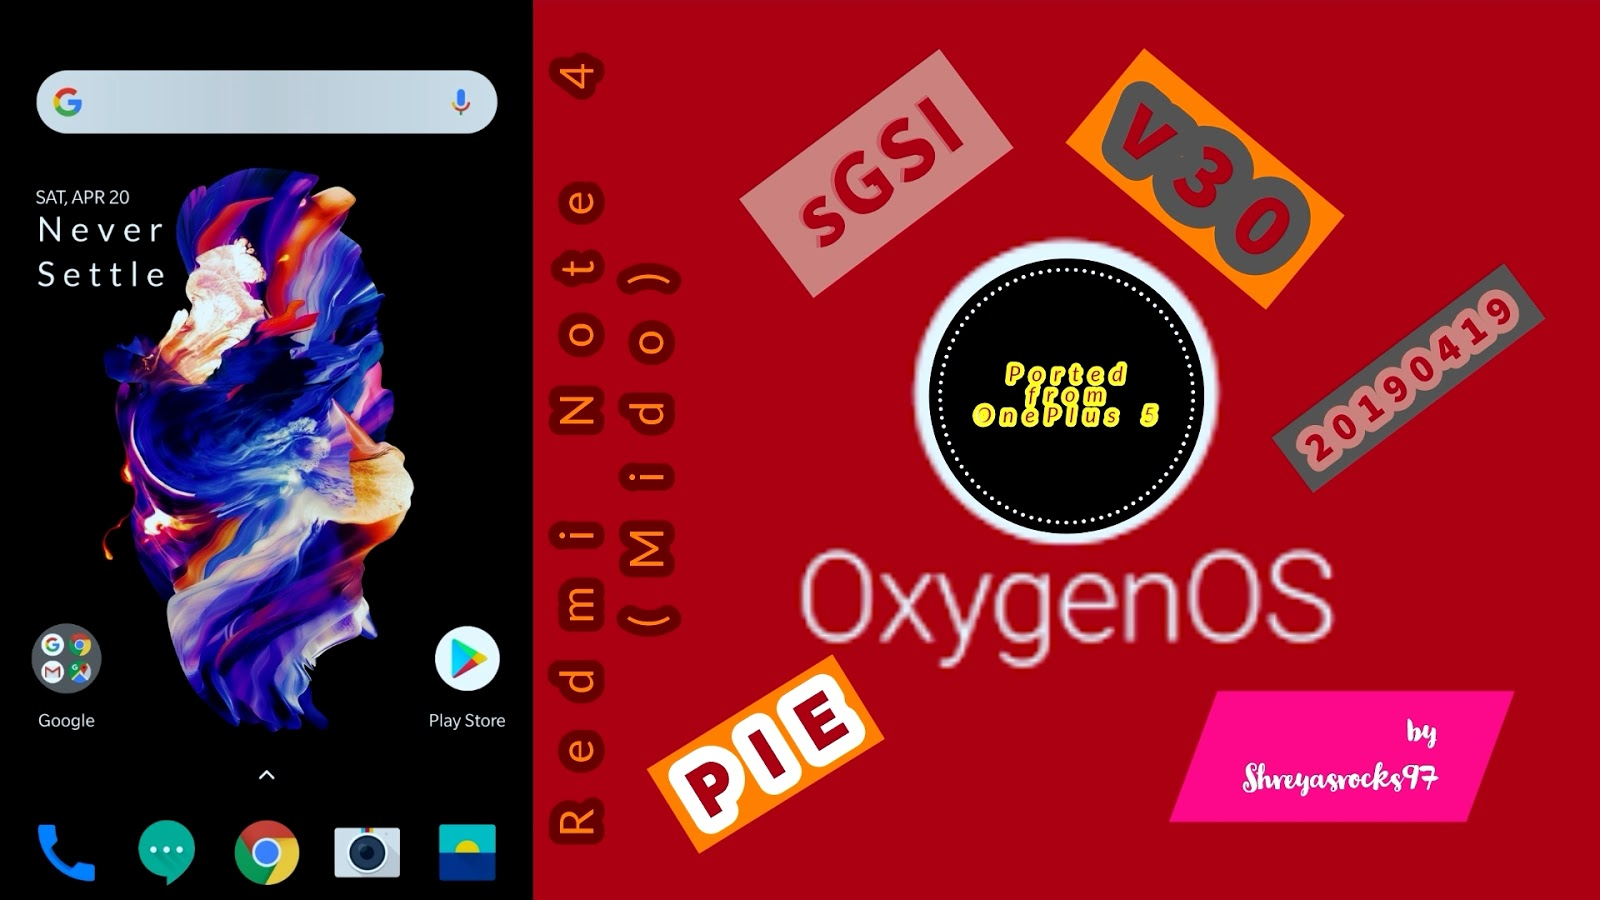 Oxygen OS Pie (OP5T) v30 (19-04-2019) for Redmi Note 4 (Mido